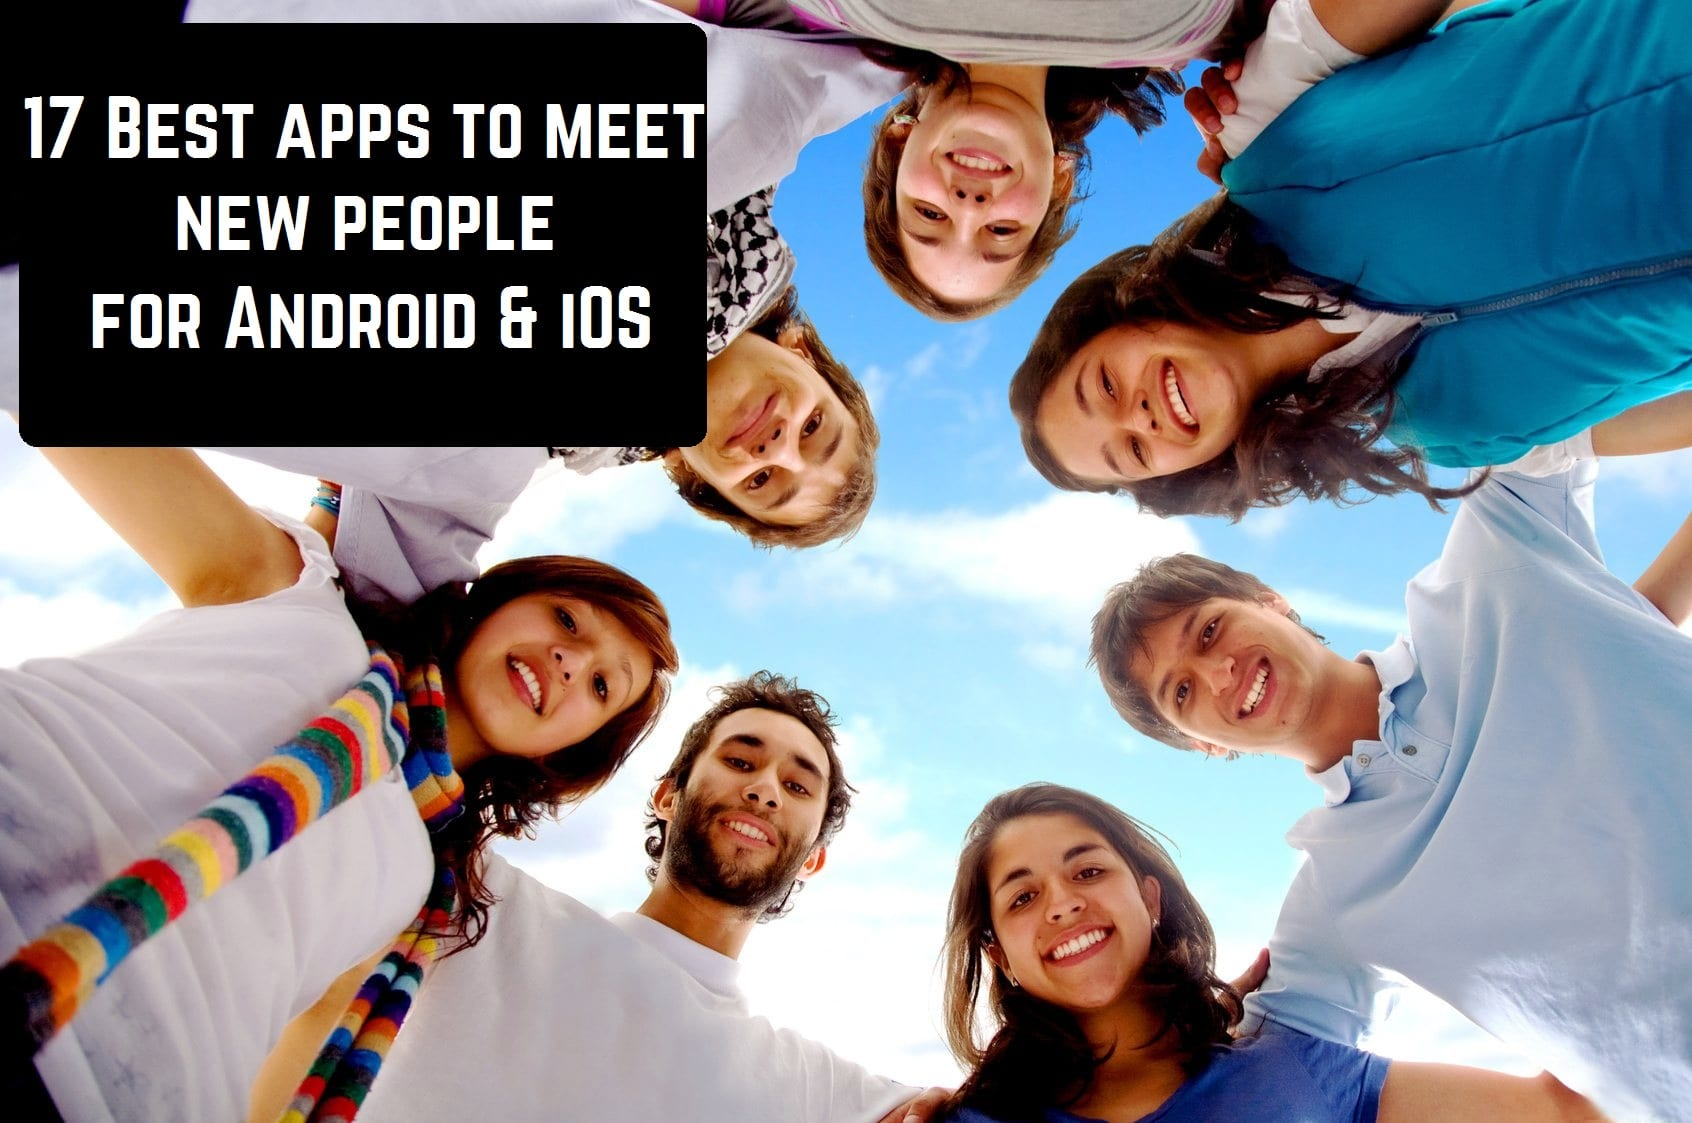 Best app for meeting people